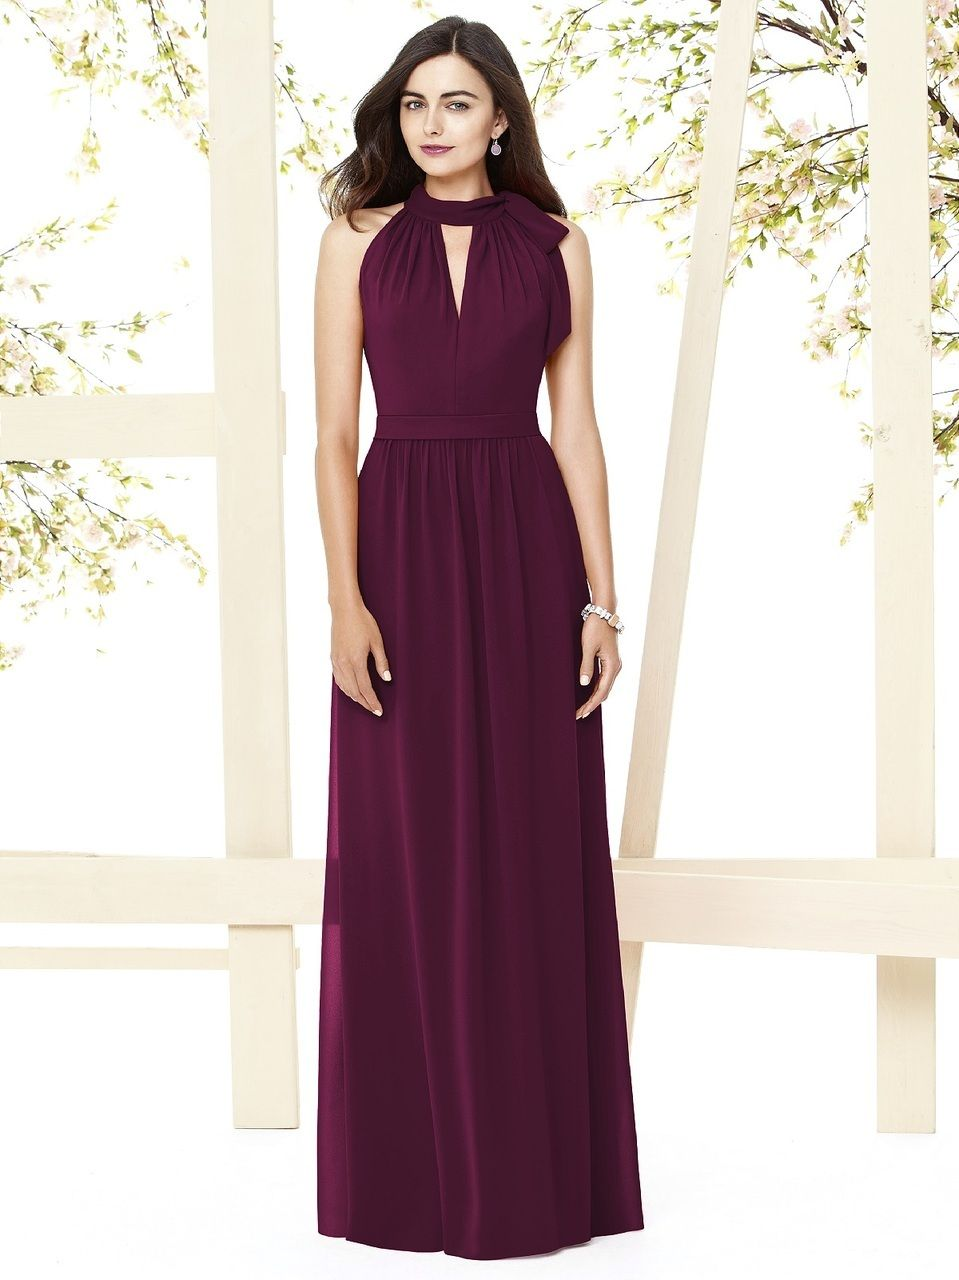 Bridals by lori social bridesmaids shop